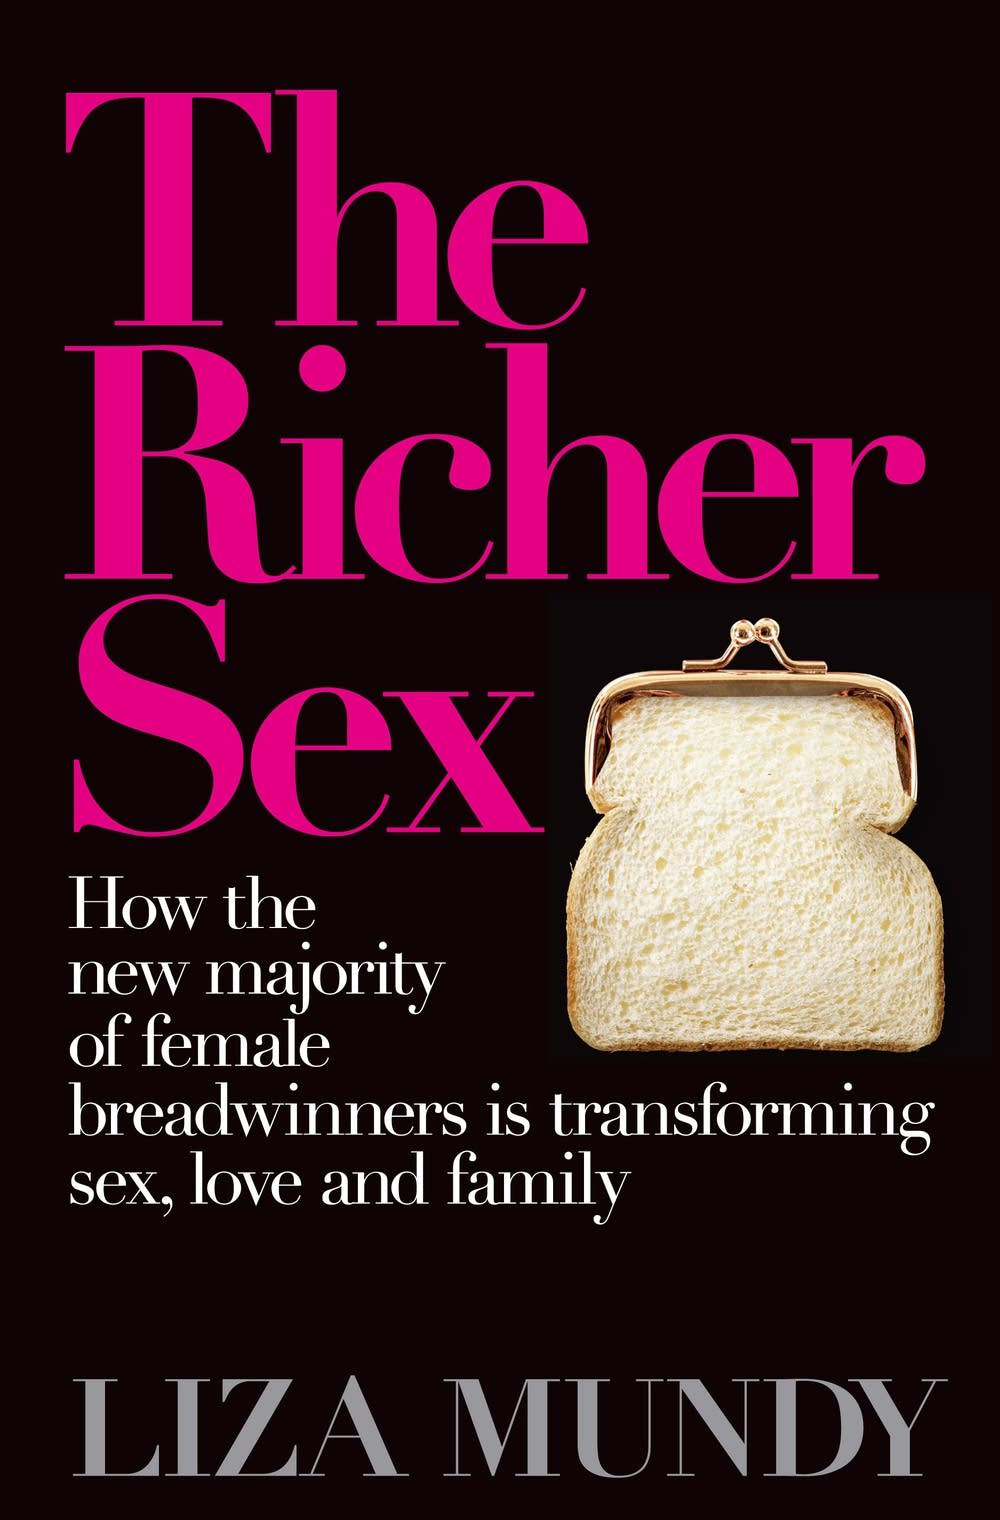 'The Richer Sex' by Liza Mundy